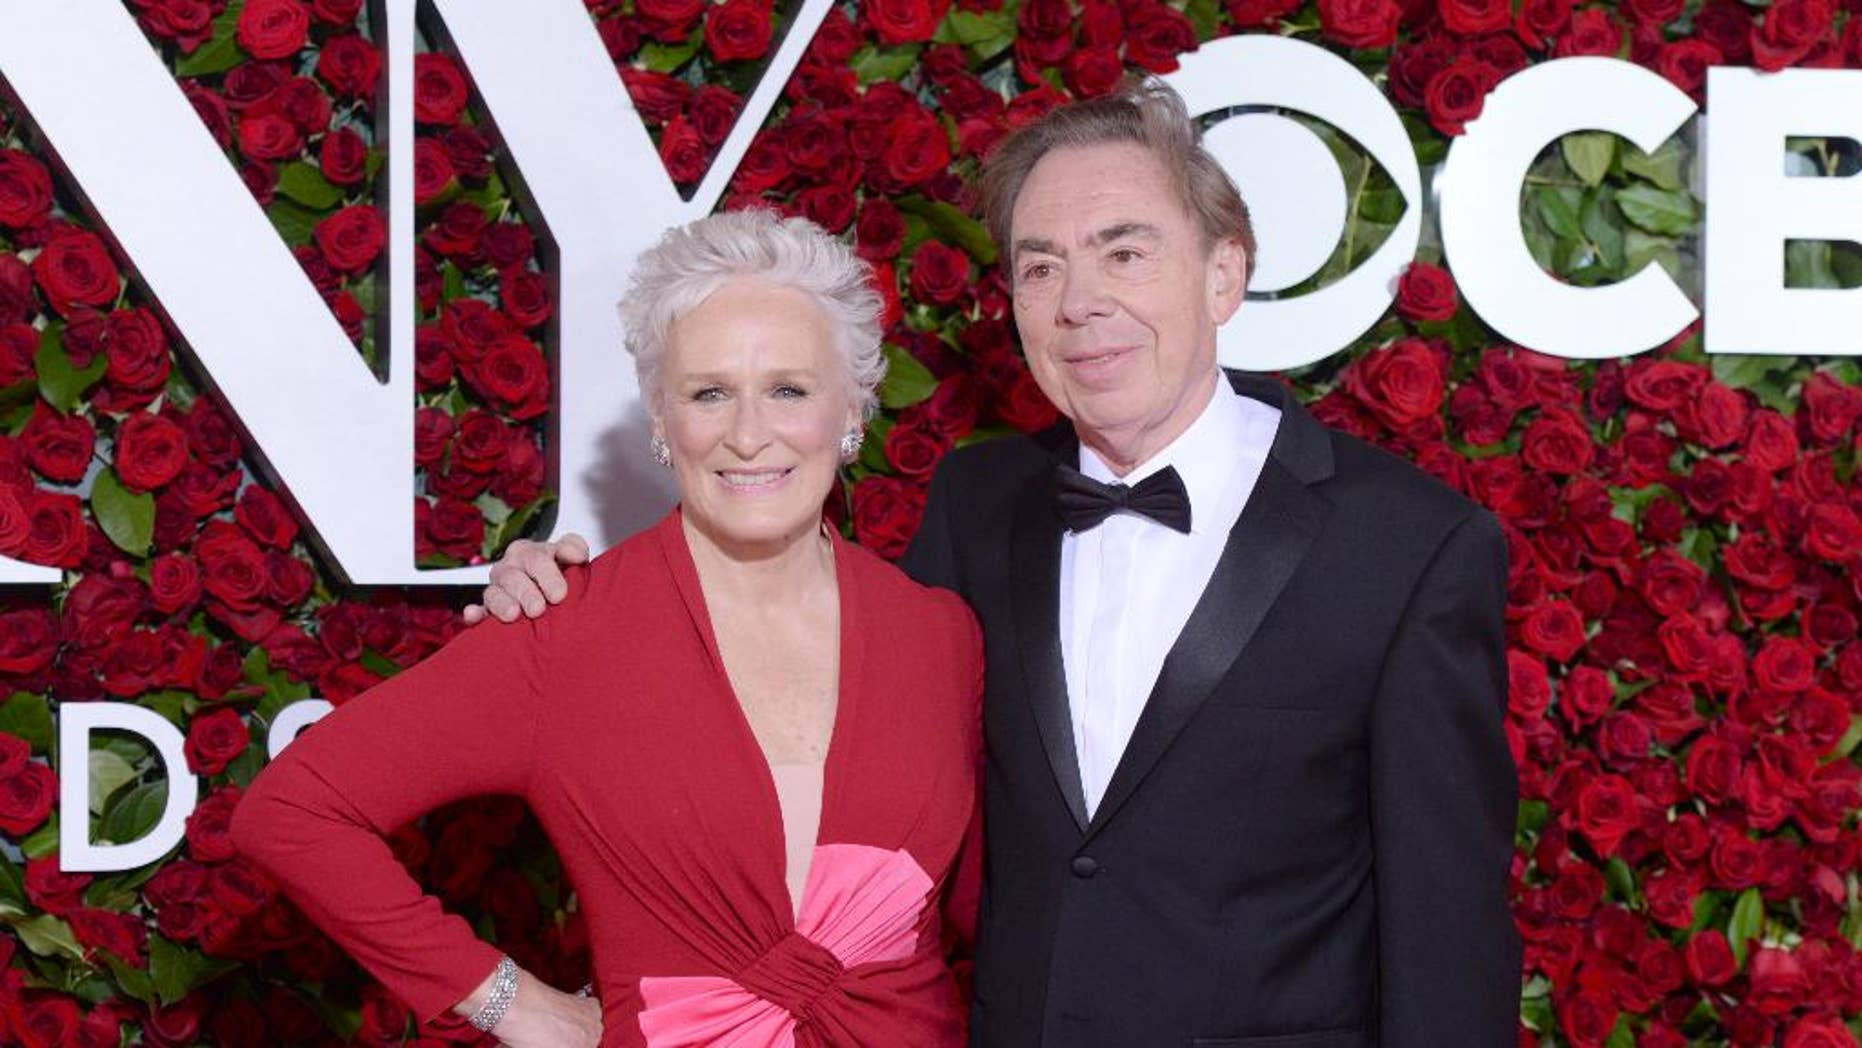 Glenn Close , left, and Andrew Lloyd Webber arrive at the Tony Awards at the Beacon Theatre on Sunday, June 12, 2016, in New York. (Photo by Charles Sykes/Invision/AP)